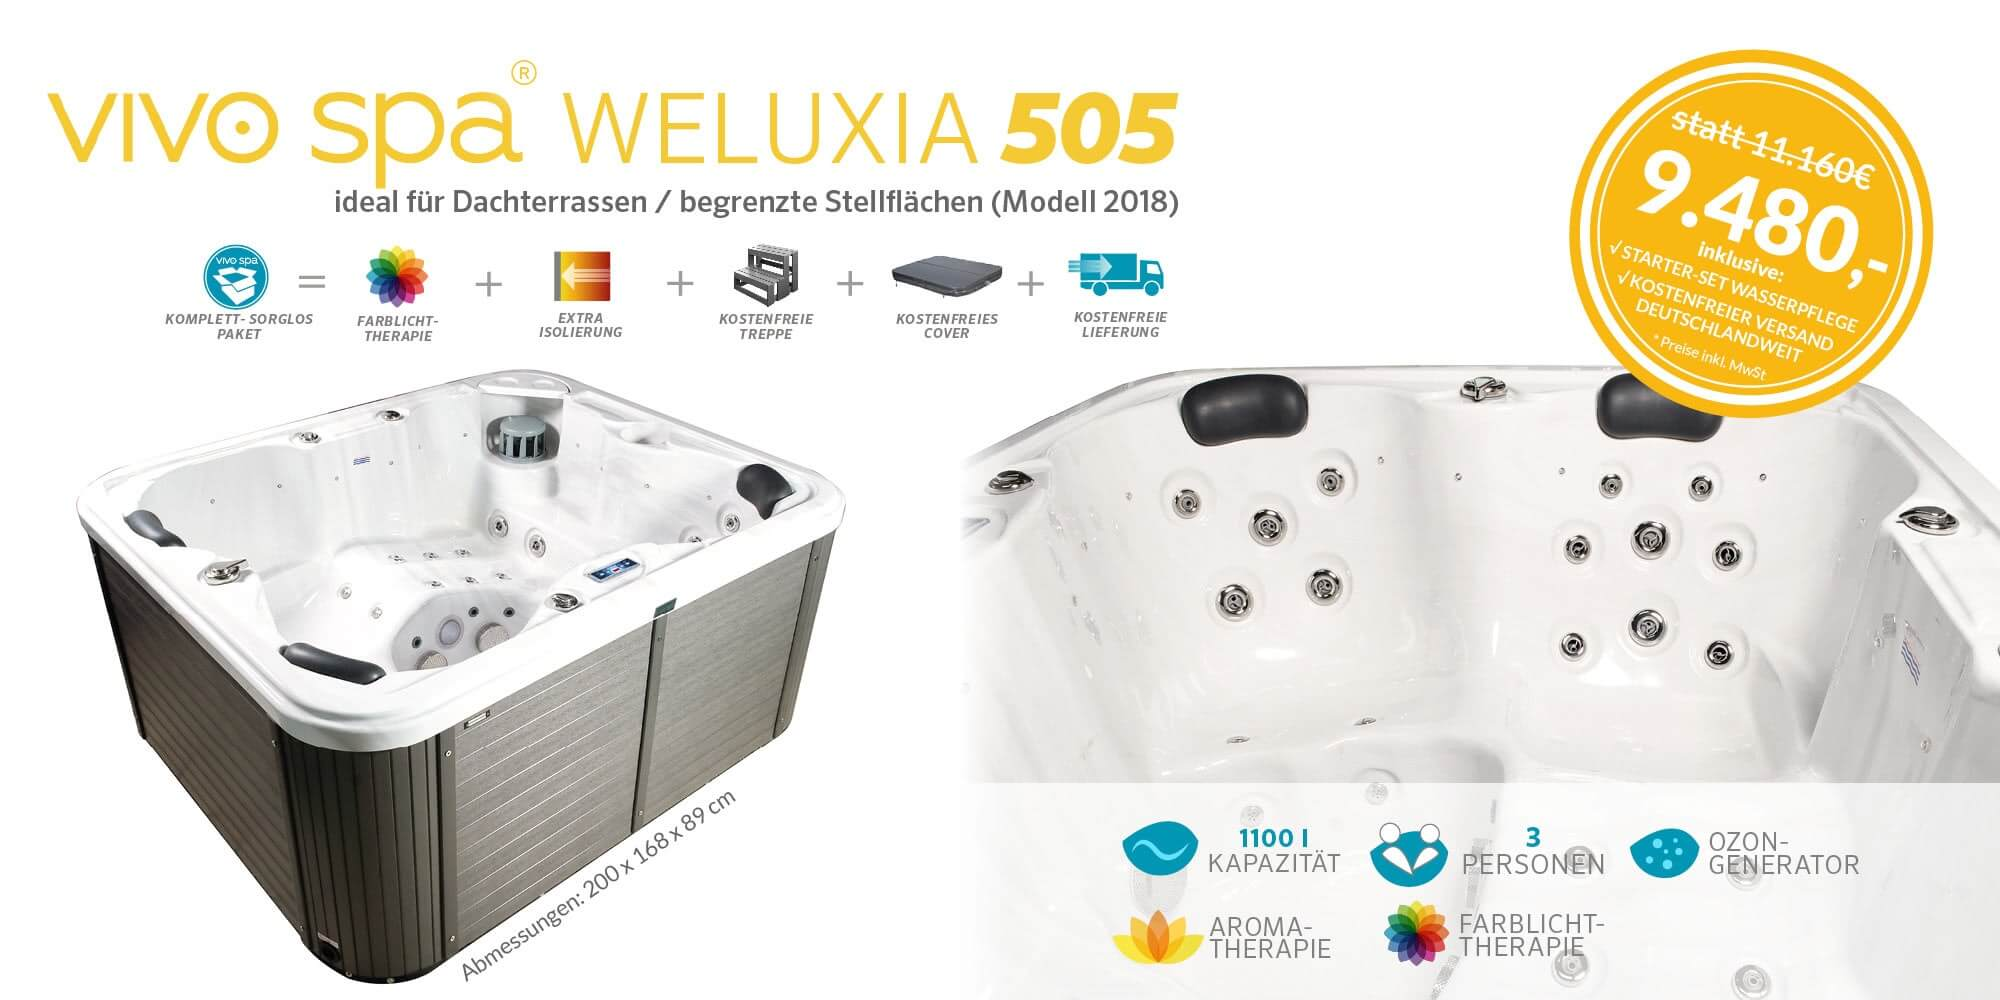 Whirlpool Center vivo spa WELUXIA 505